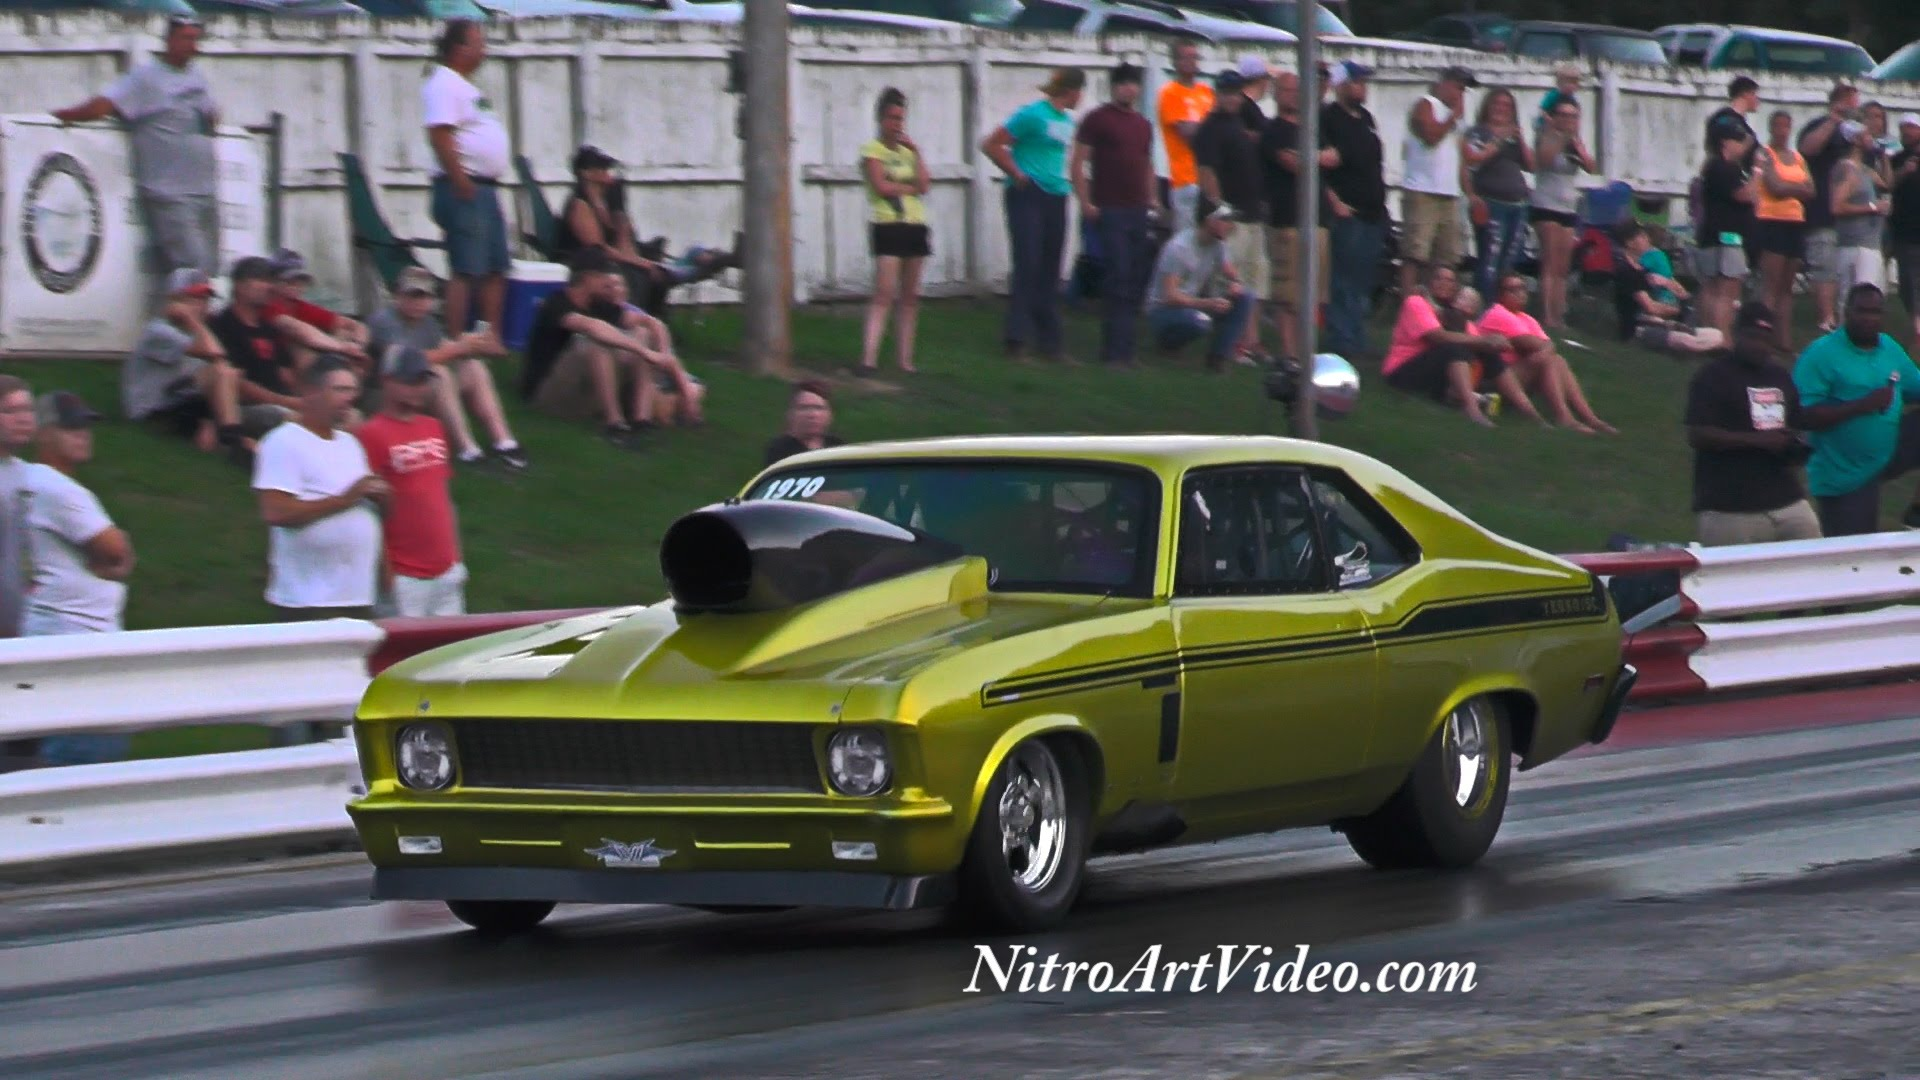 Boss Hog Is The Boss MoFo @ Drag Racing Sabotage Knoxville Dragway And Will Lock U Up!